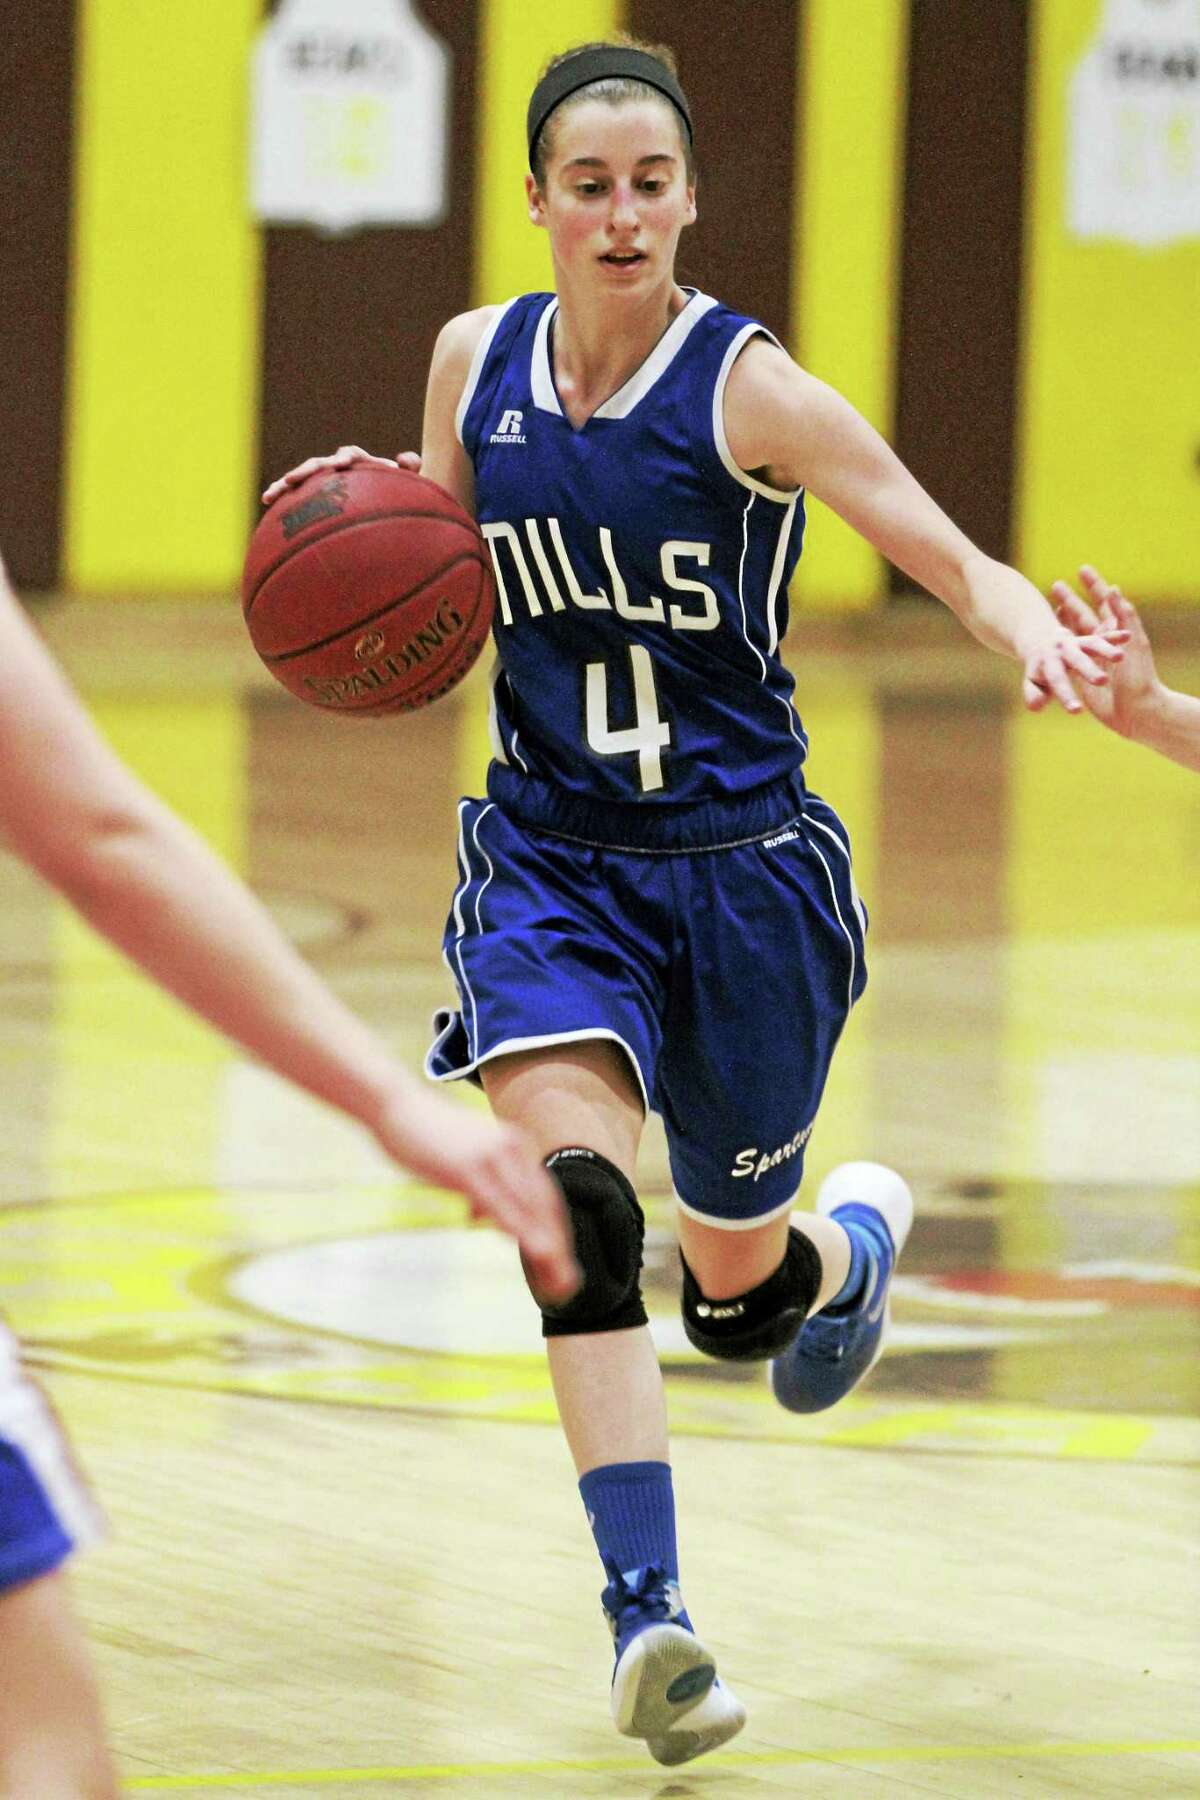 Photo by Marianne KillackeyCorinne Morrow's three first-half 3-pointers carried Lewis Mills to a first-half lead in Monday's Berkshire League Tournament semifinal at Thomaston High School.